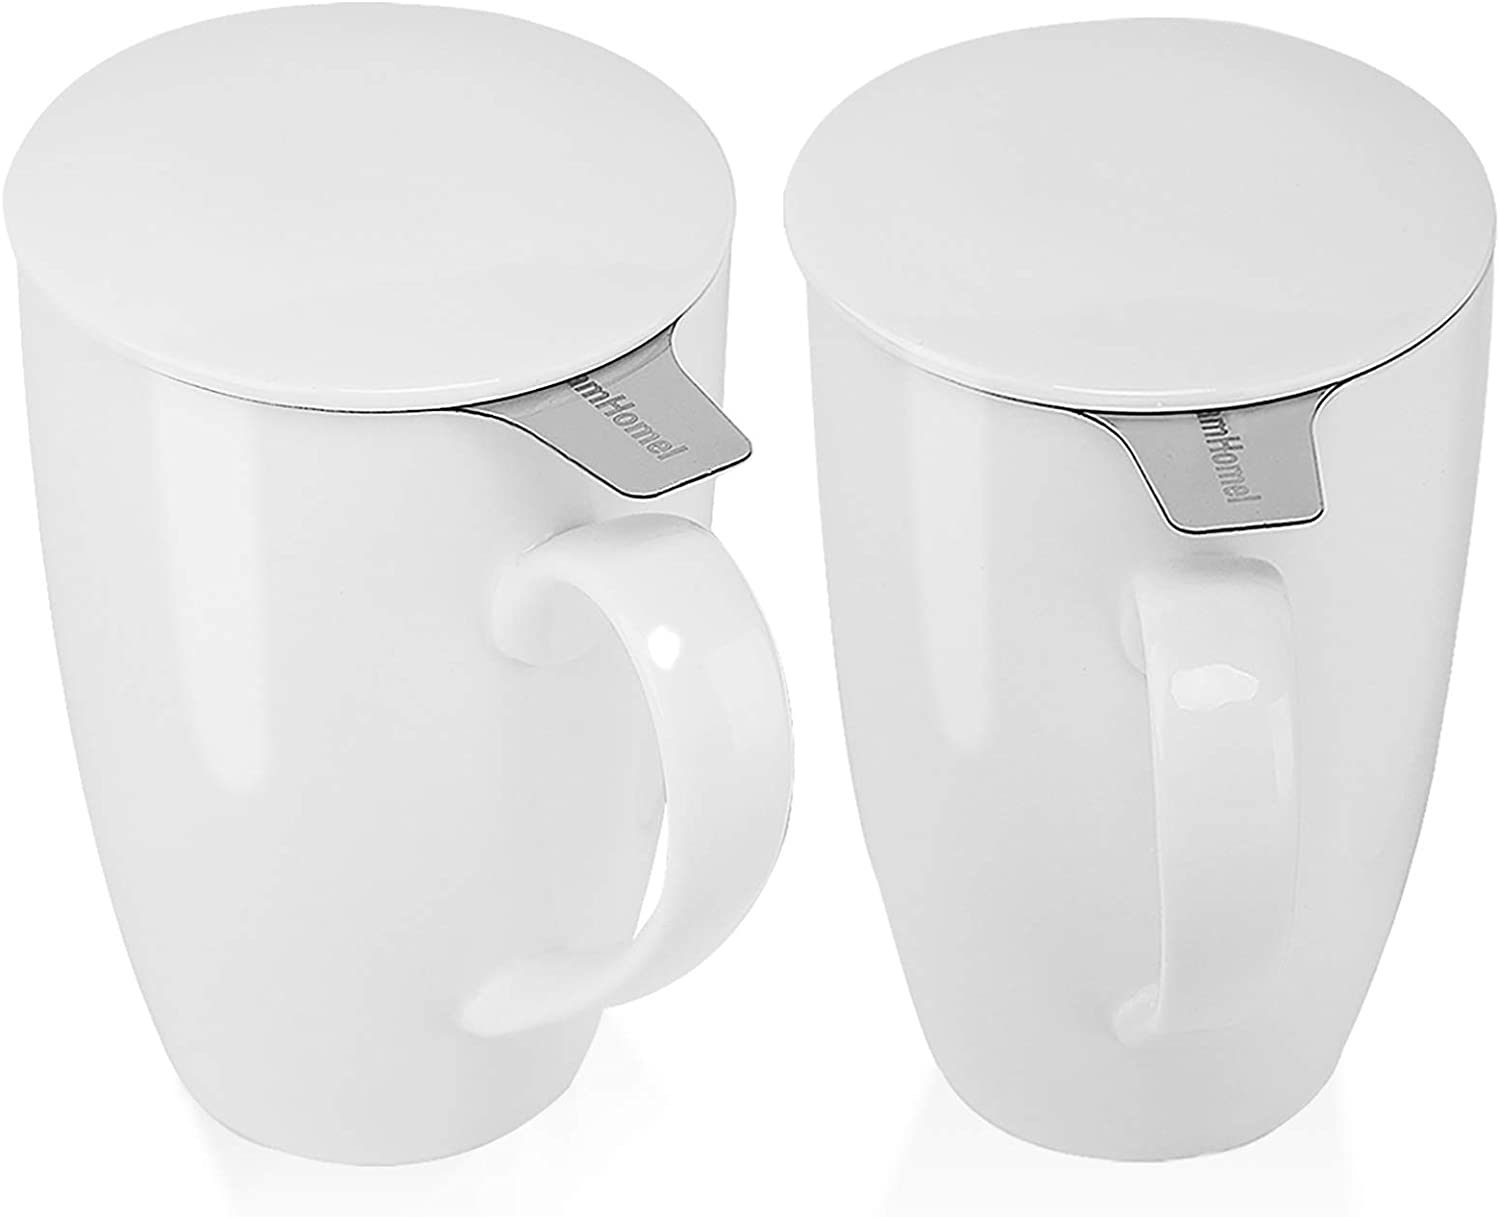 amHomel Porcelain Tea Cup With Infuser Basket and Lid for Steeping,15 oz Tea Mugs,Set of 2,white